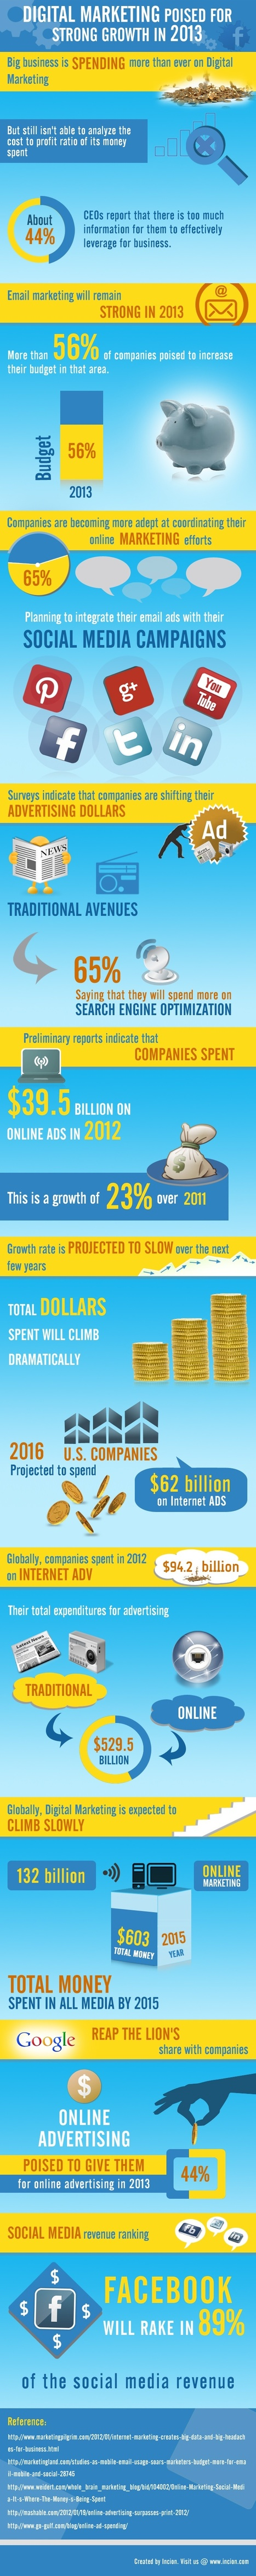 Growth of digital marketing in 2013 [Infographic] | MarketingHits | Scoop.it